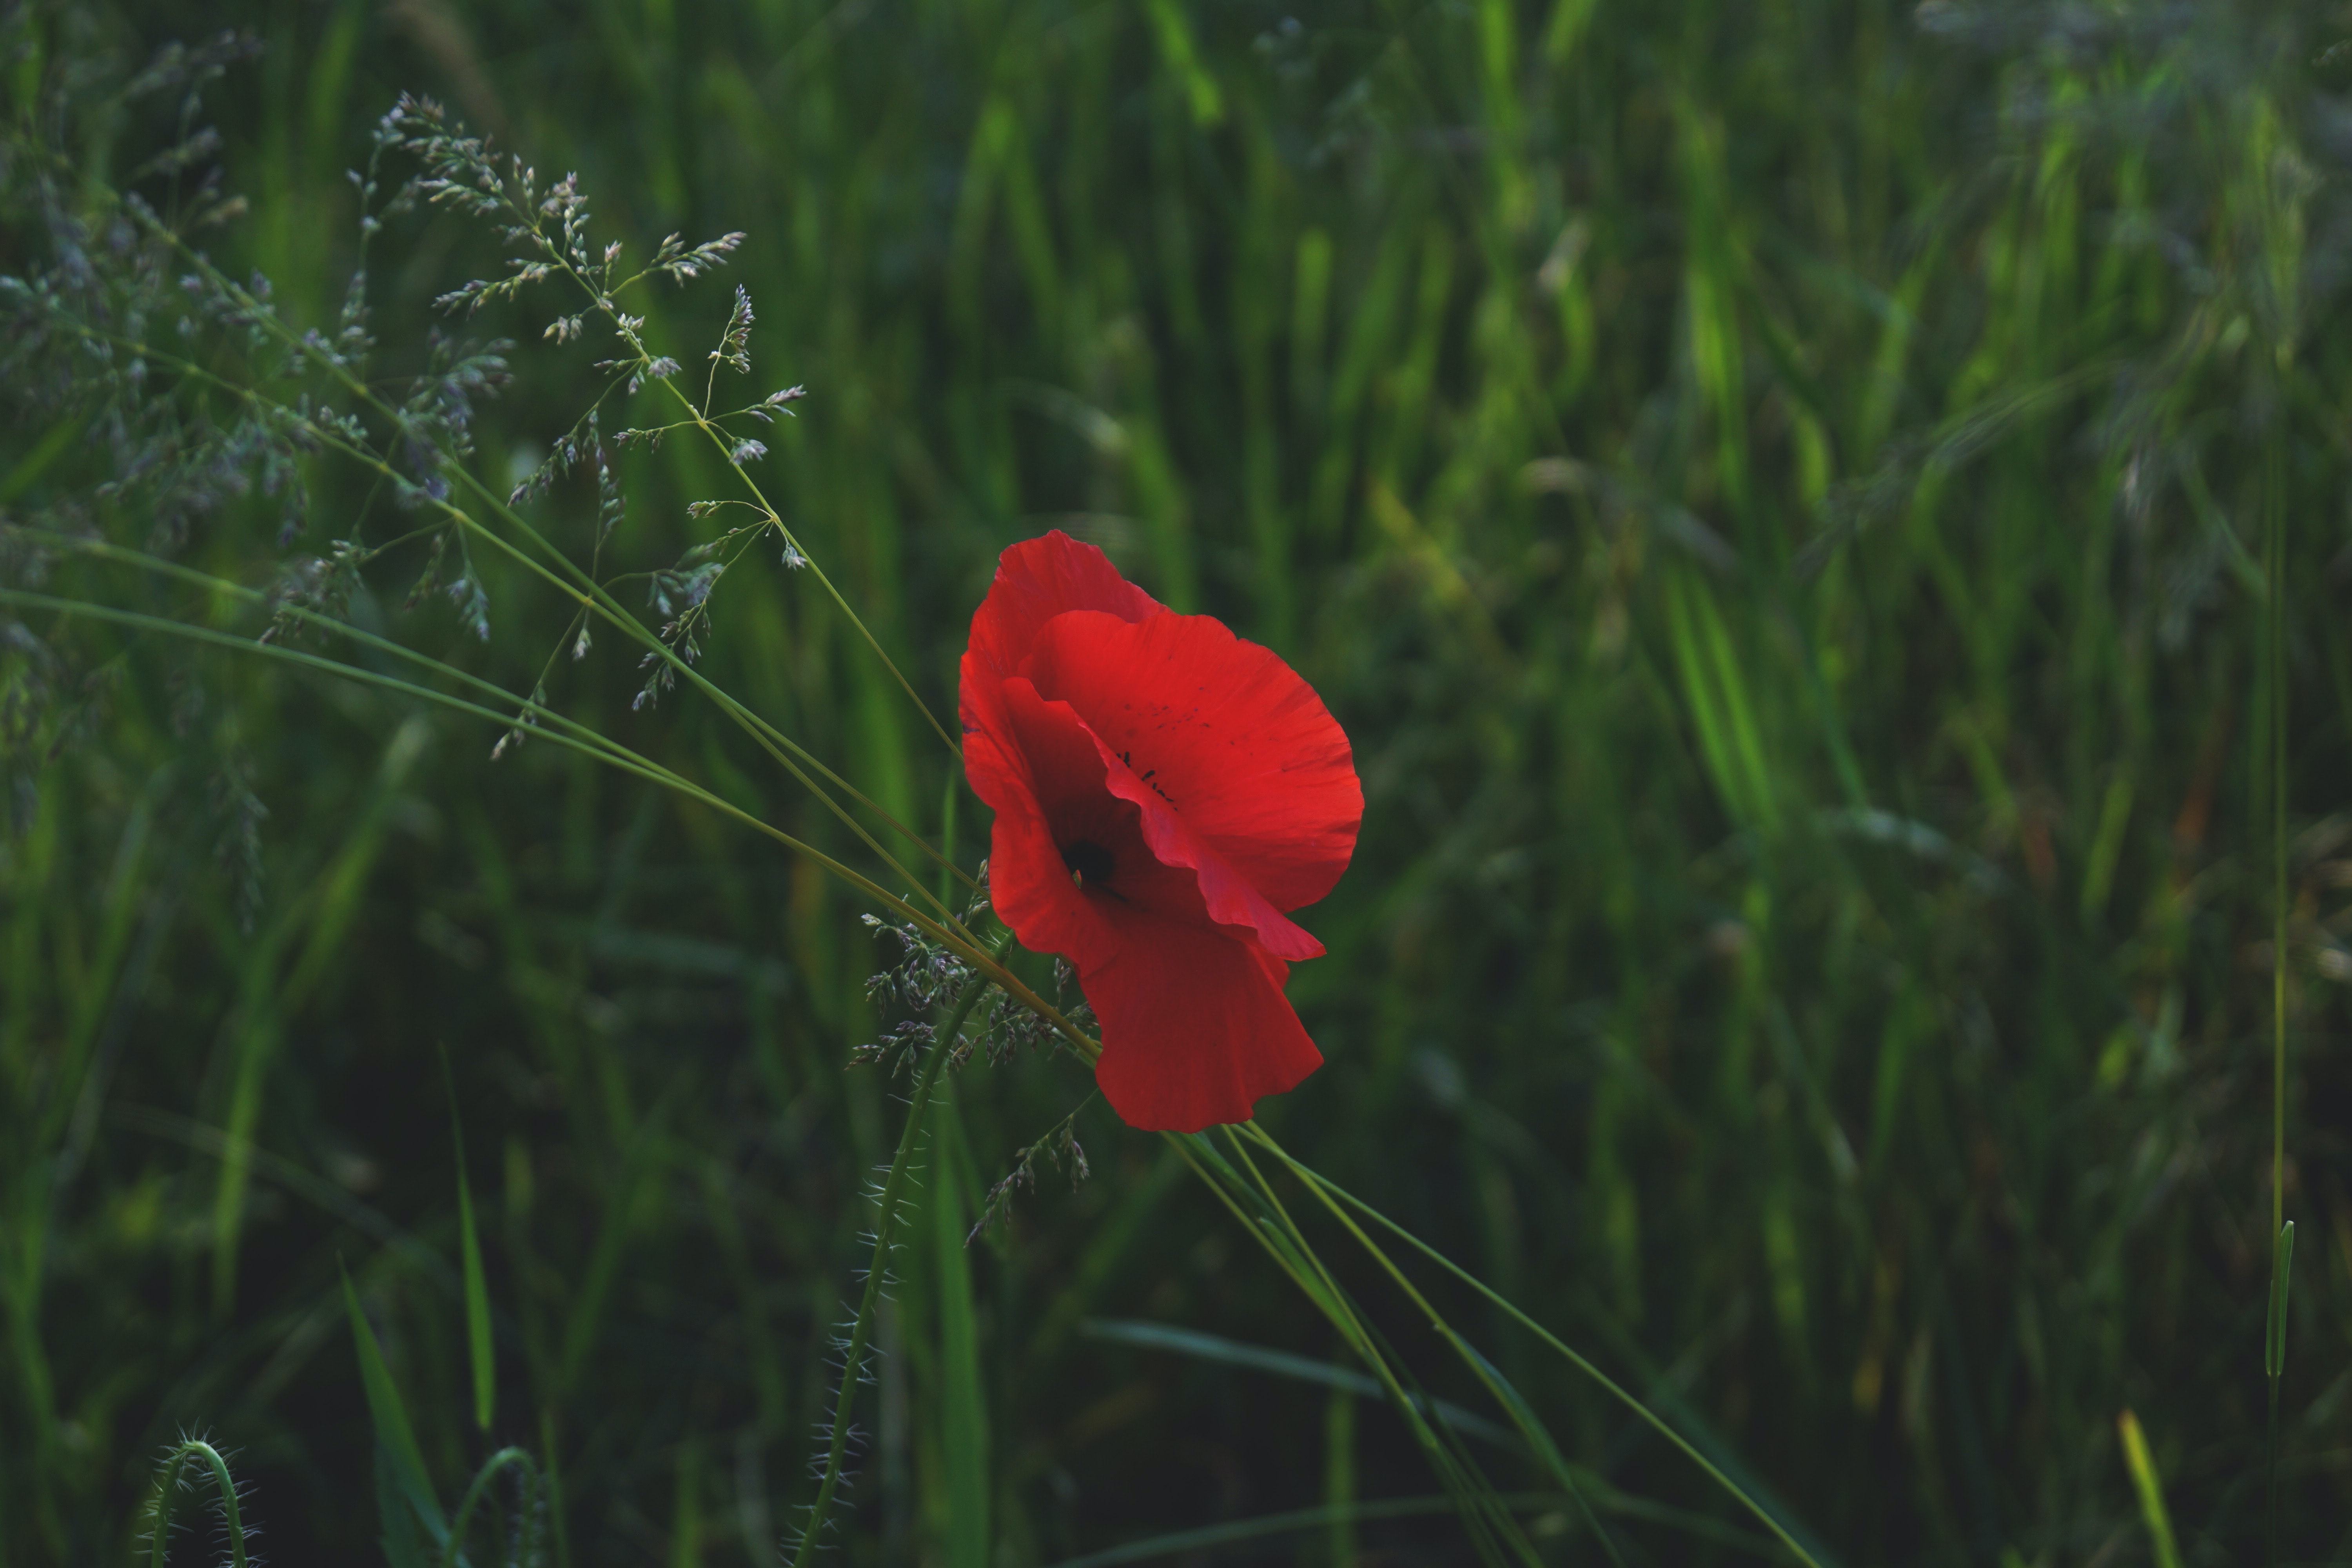 A lone red poppy in green grass